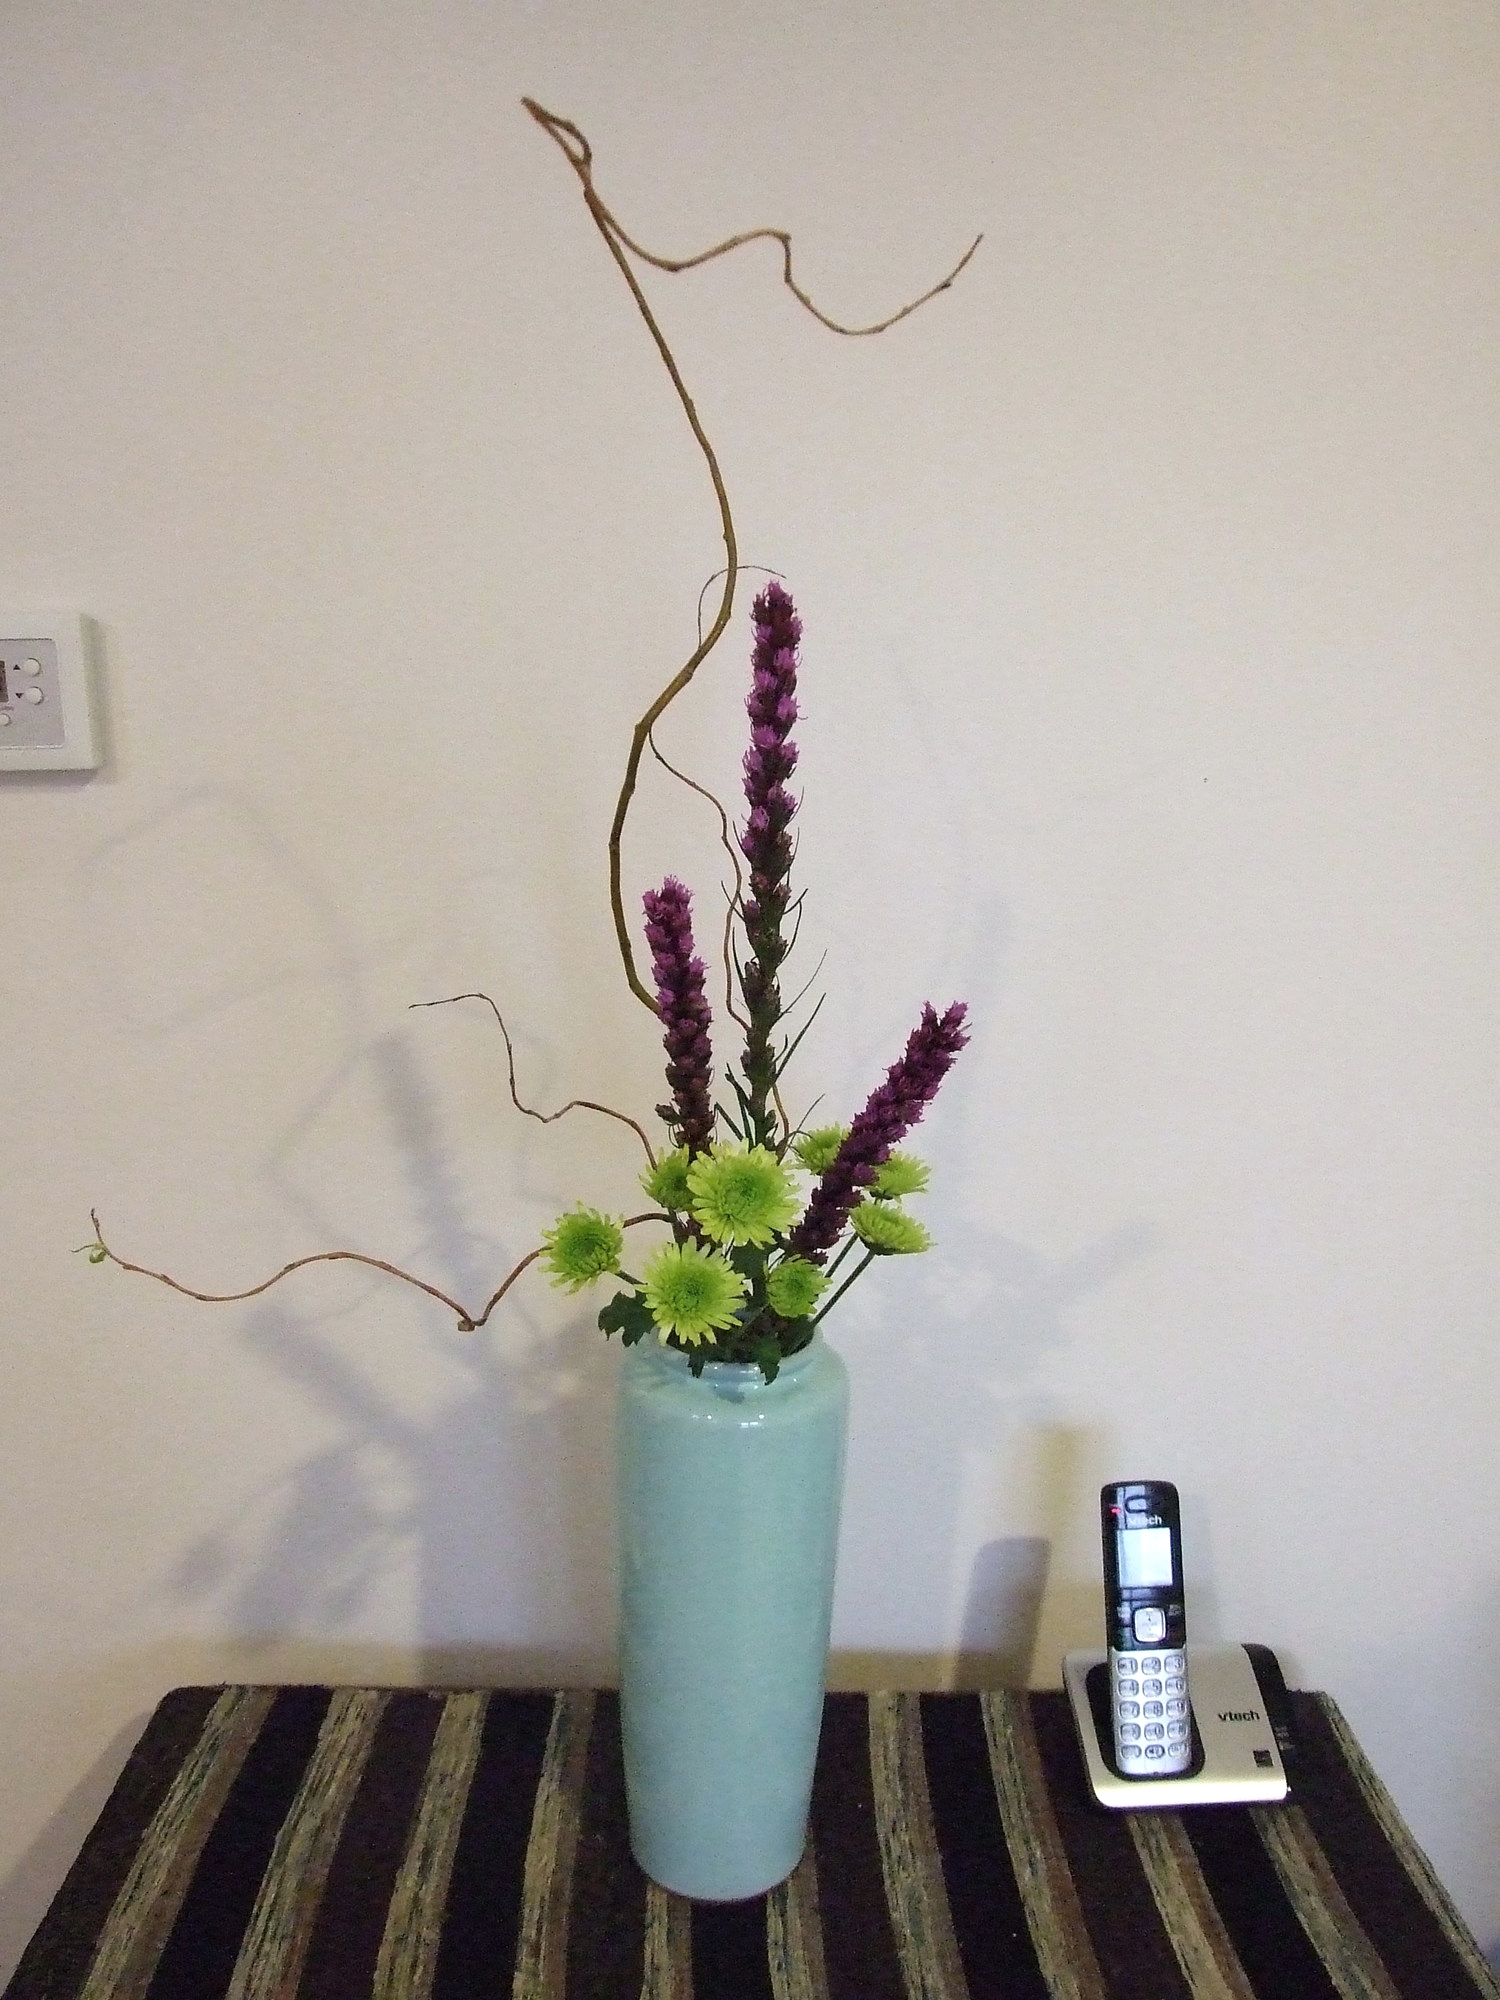 Curly Willow, Baby Mums, and Blazing Star